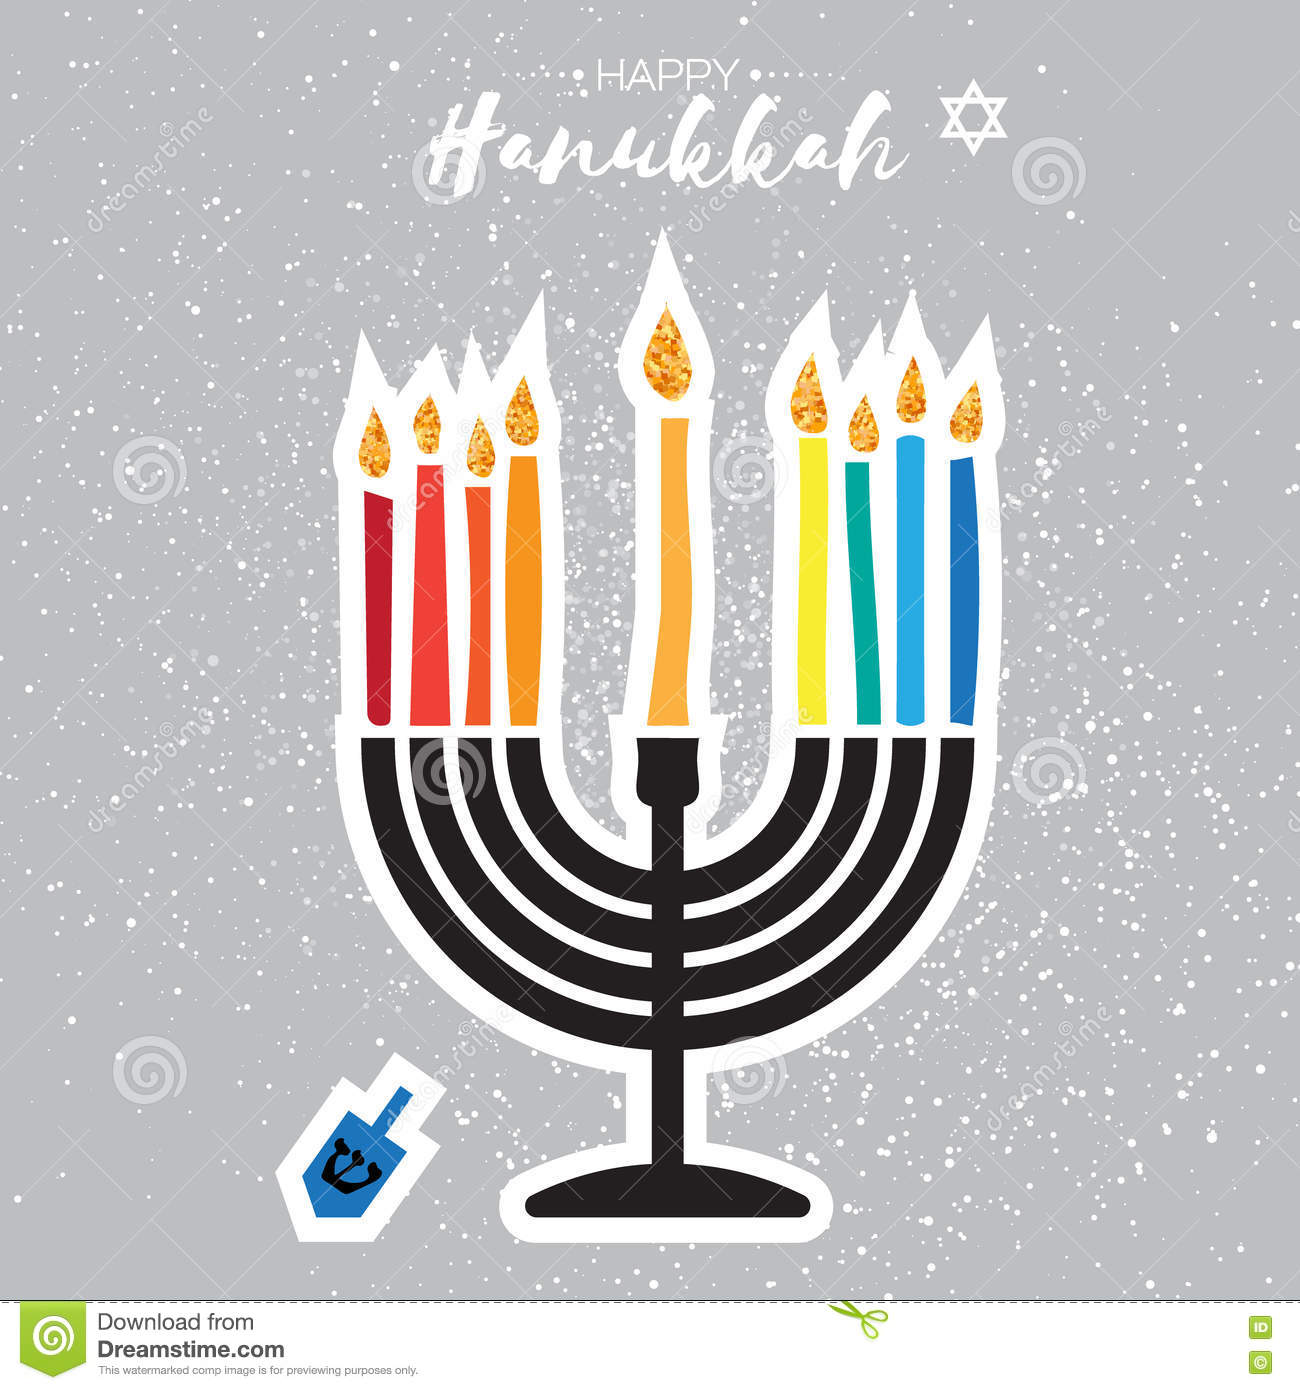 Colorful happy hanukkah greeting card jewish holiday with menorah download colorful happy hanukkah greeting card jewish holiday with menorah stock vector illustration of m4hsunfo